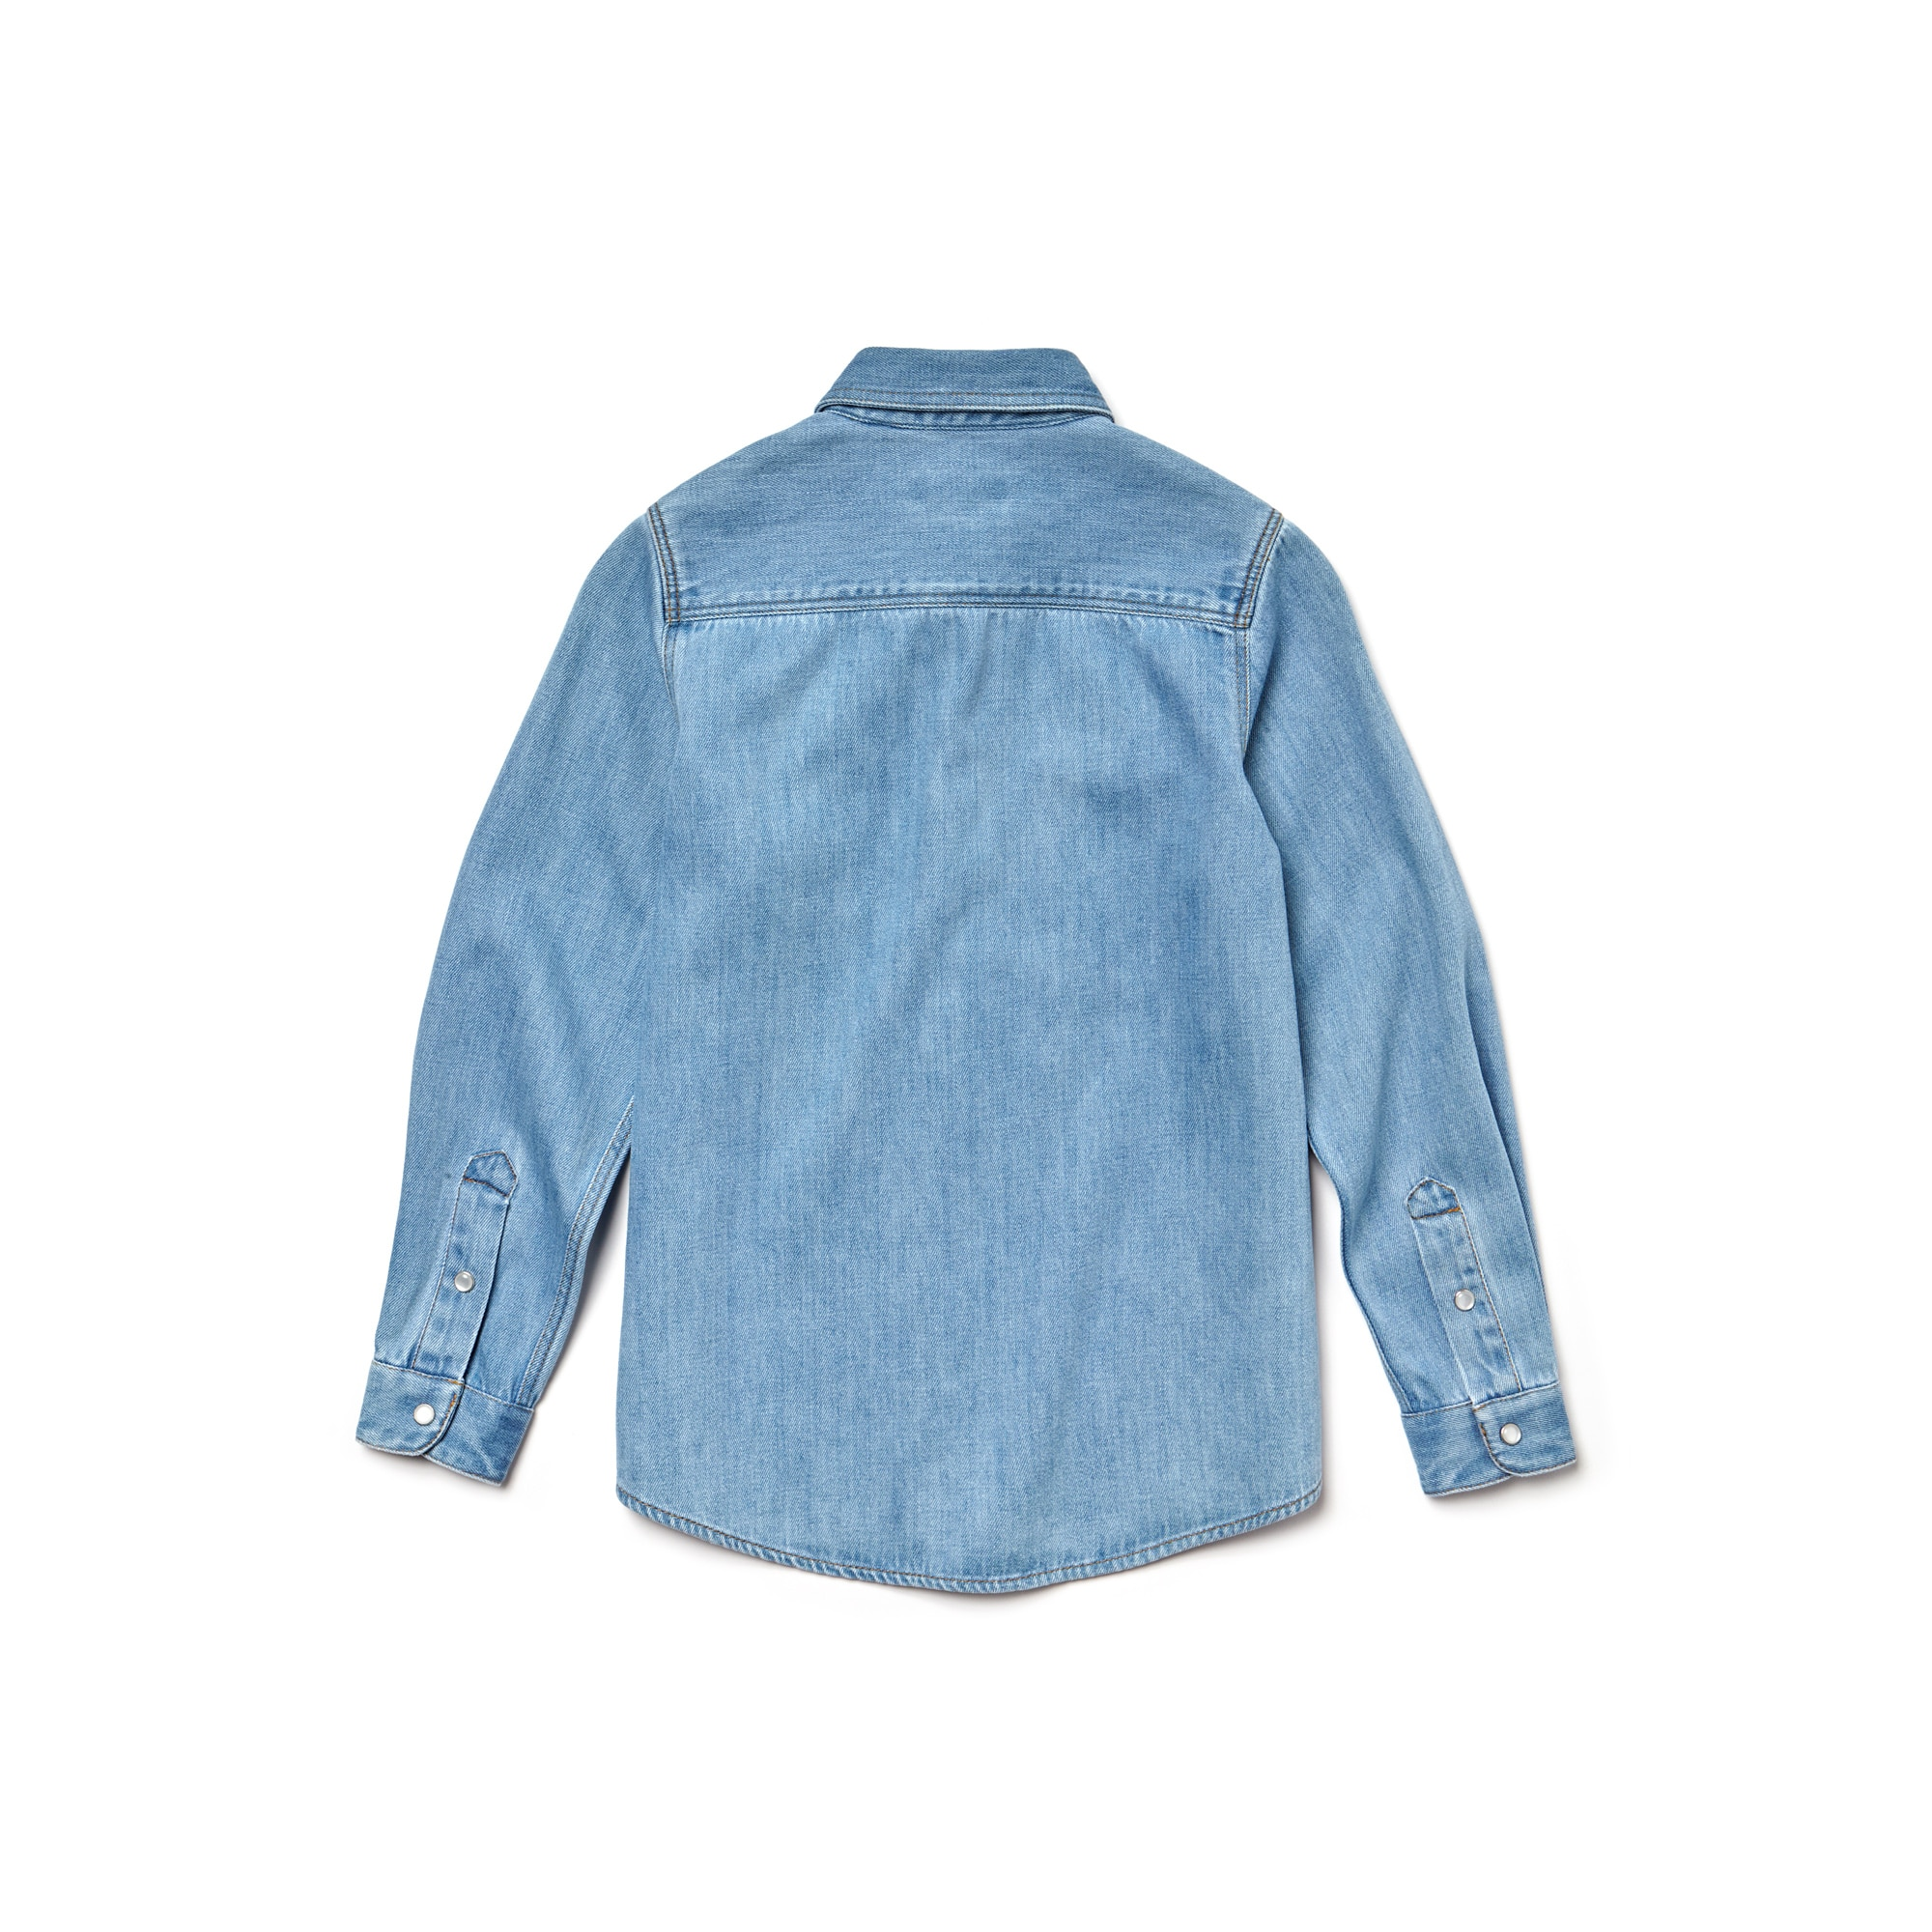 Boys' Cotton Denim Shirt